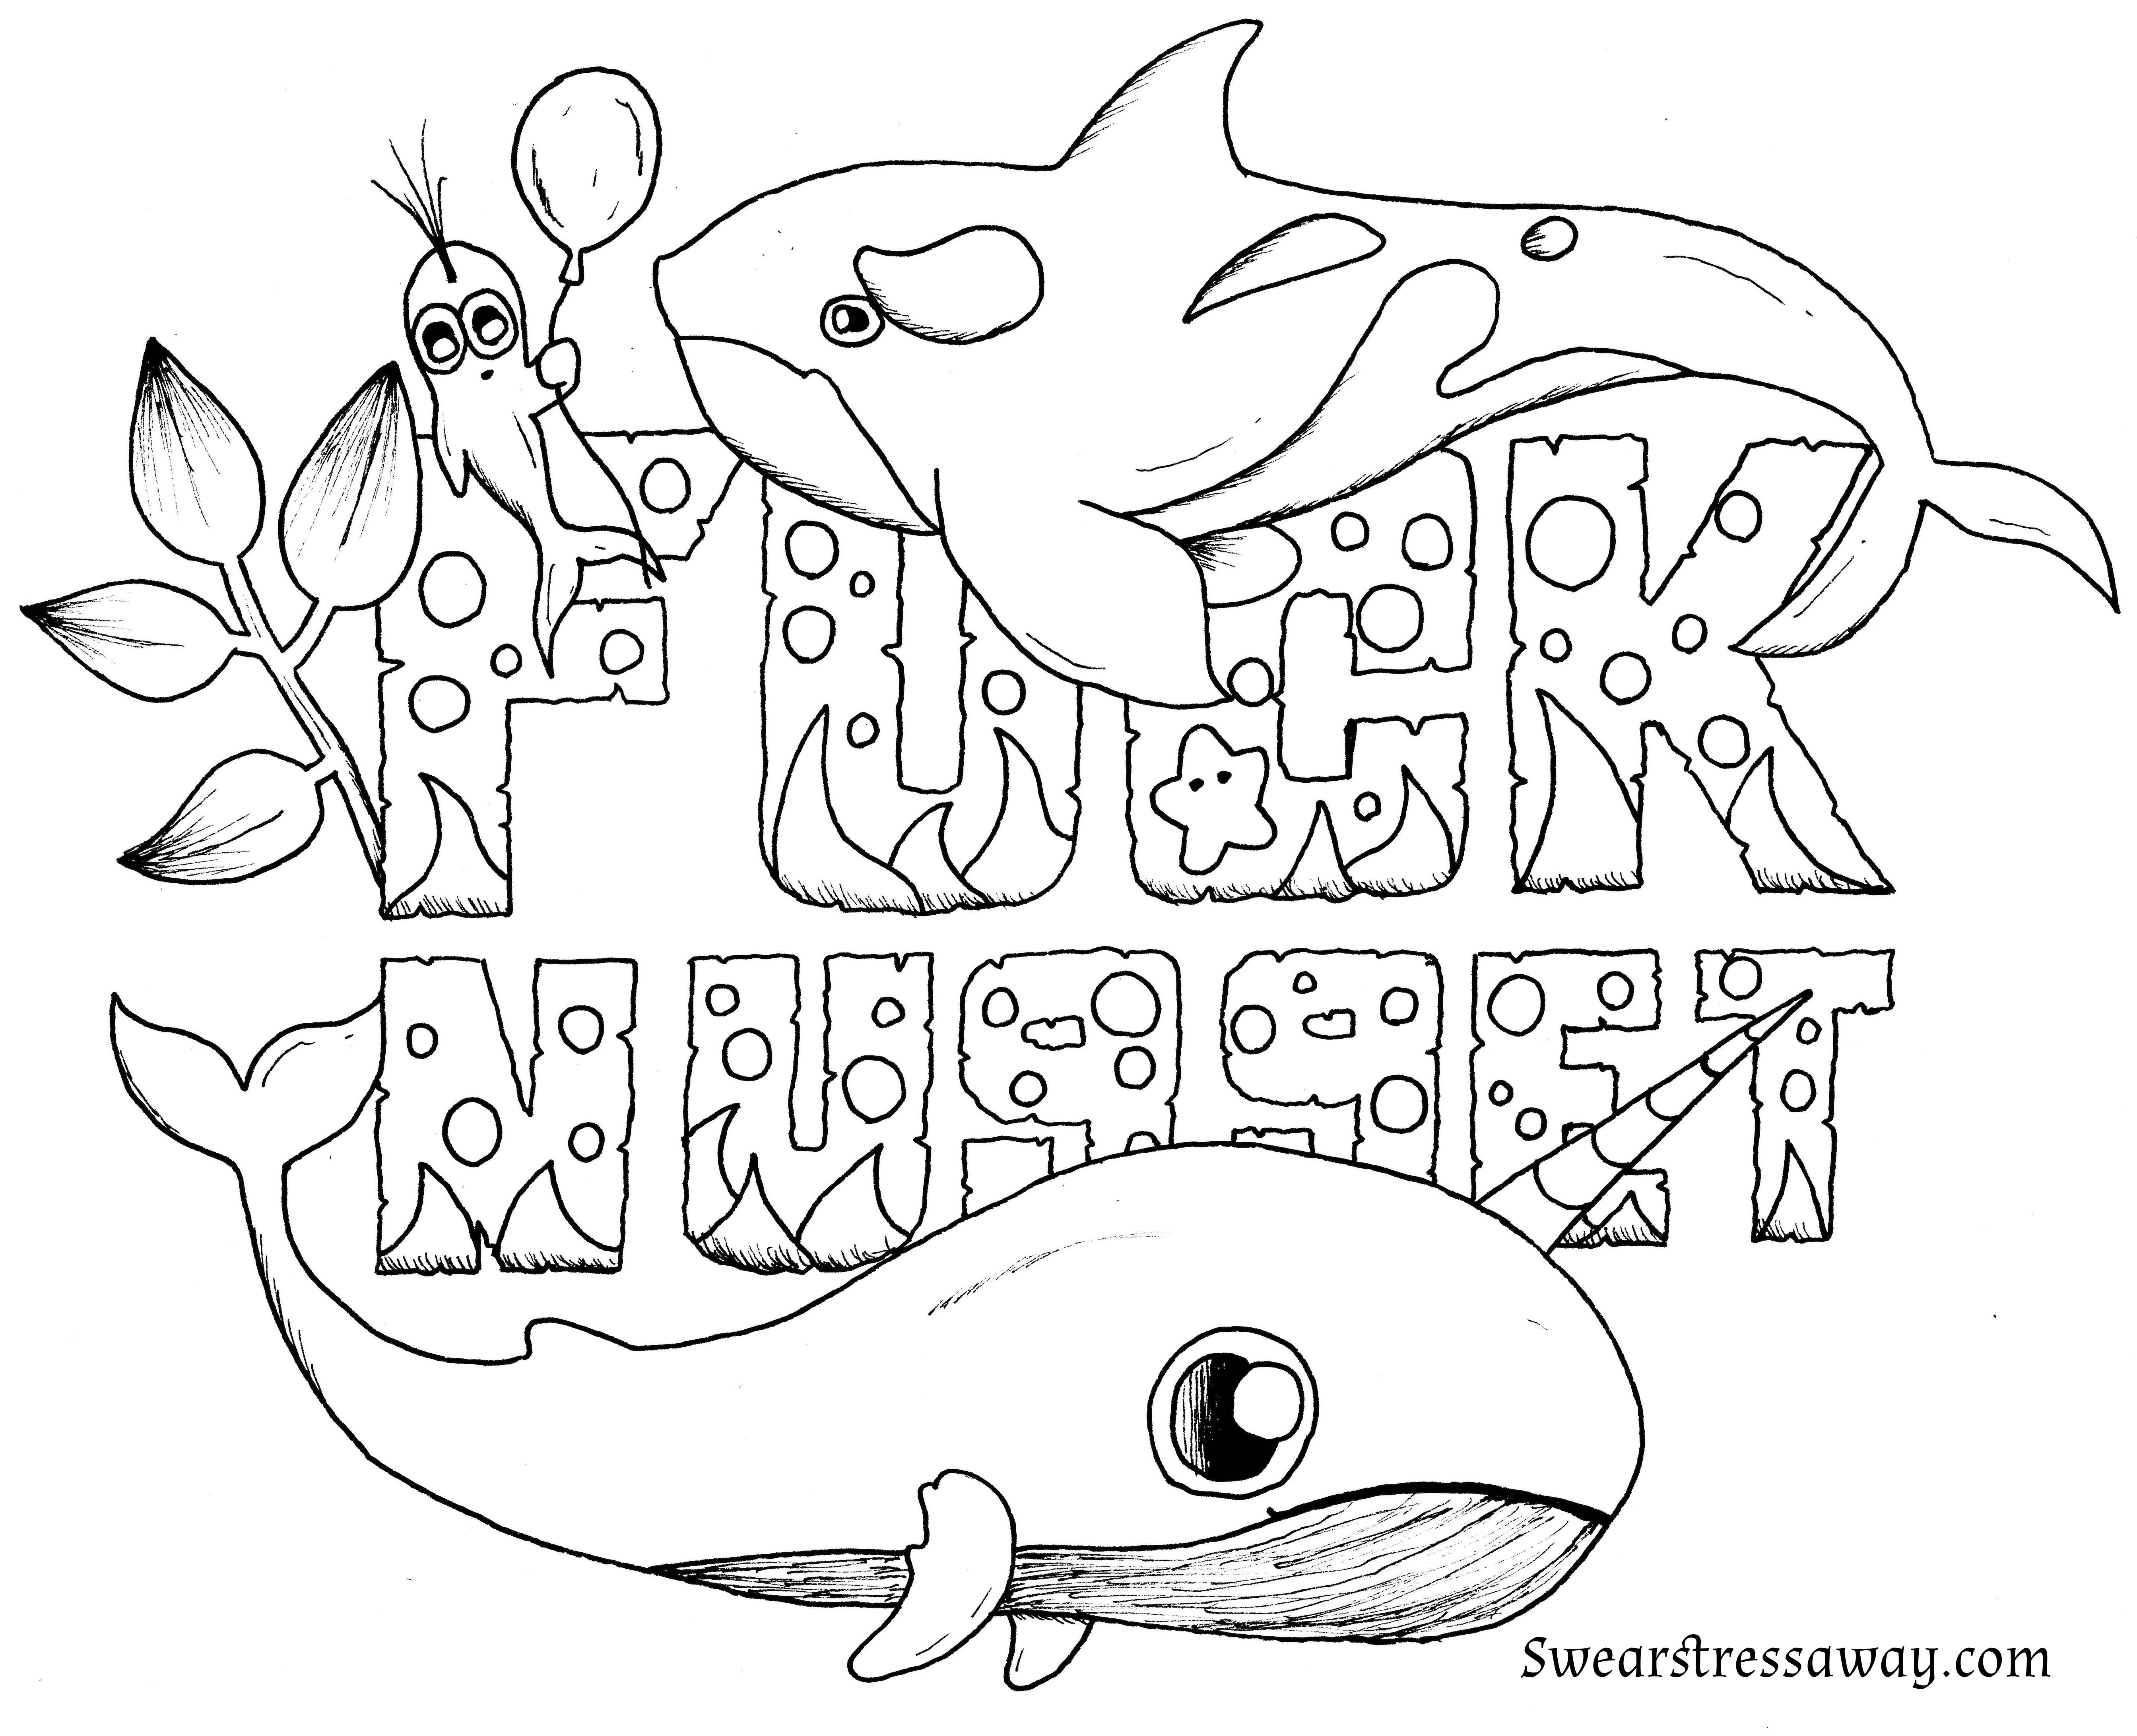 Fucknugget Swear Word Coloring Page Adult Coloring Page